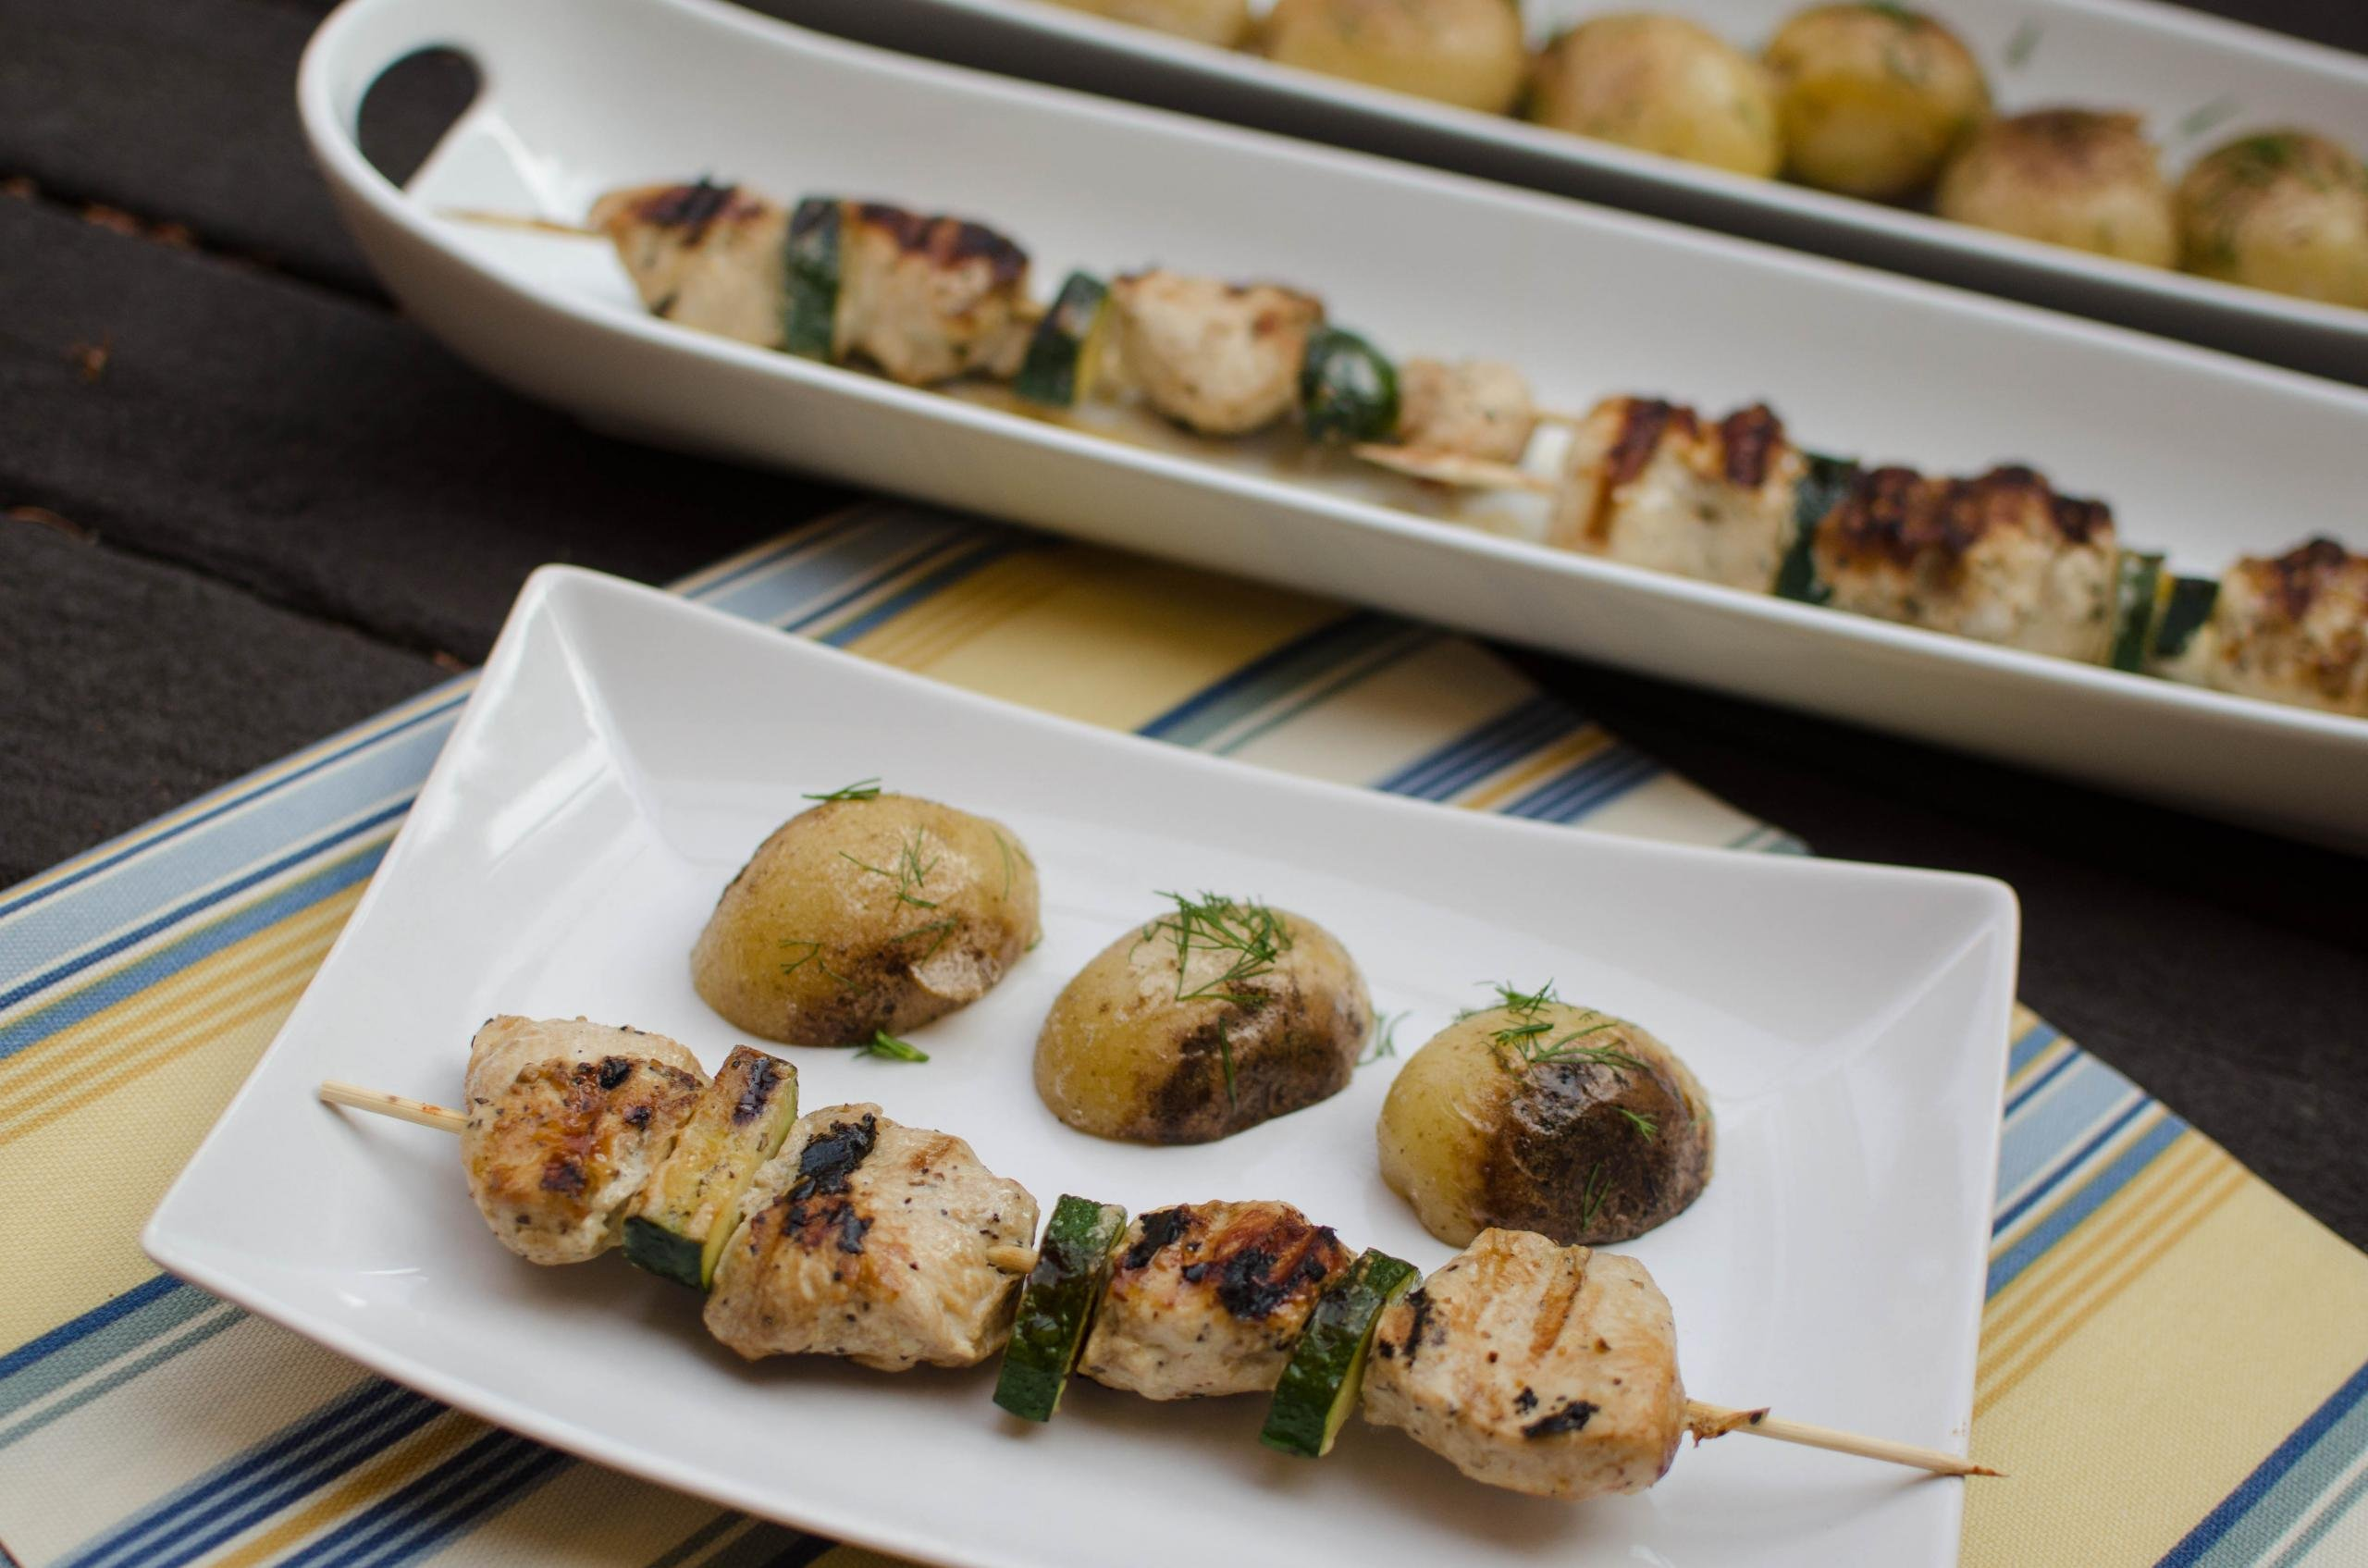 Chicken Kebabs on a plate with oven baked potatoes besides it